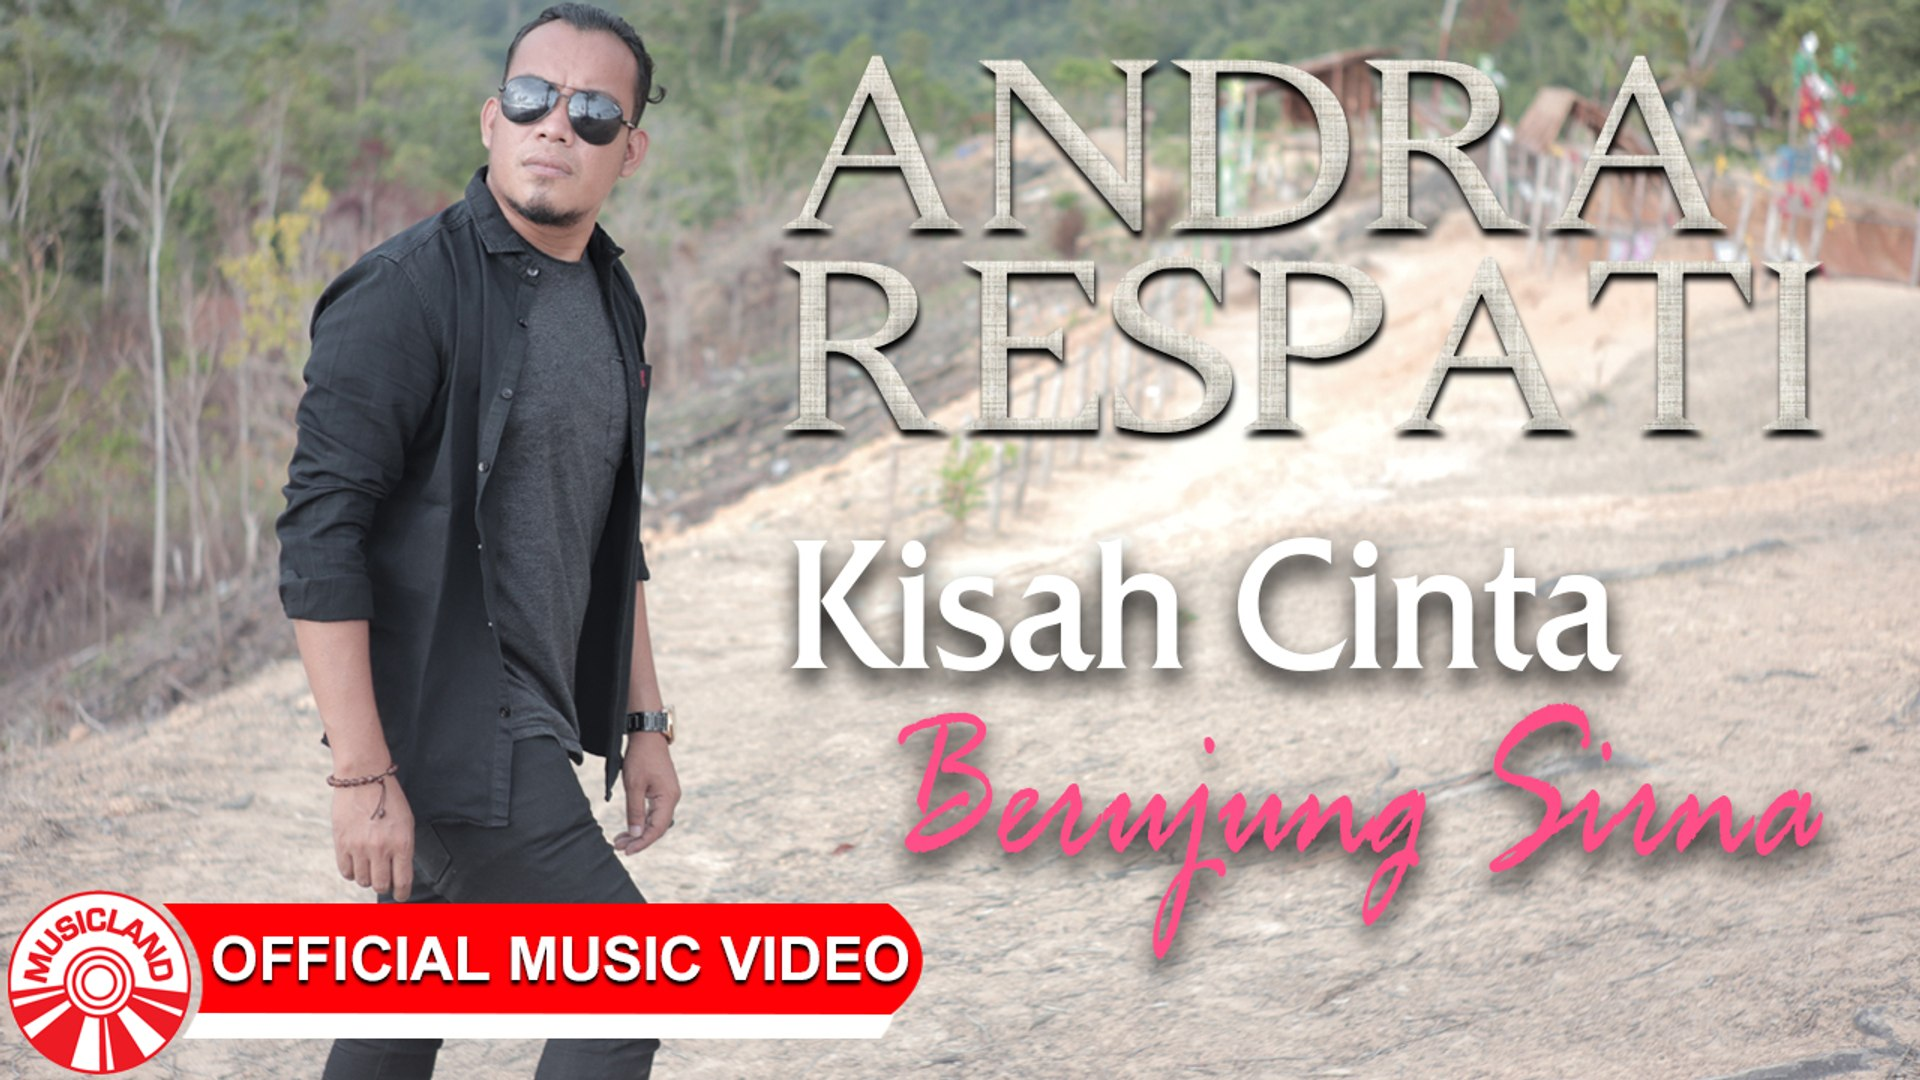 Andra Respati - Kisah Cinta Berujung Sirna [Official Music Video HD]